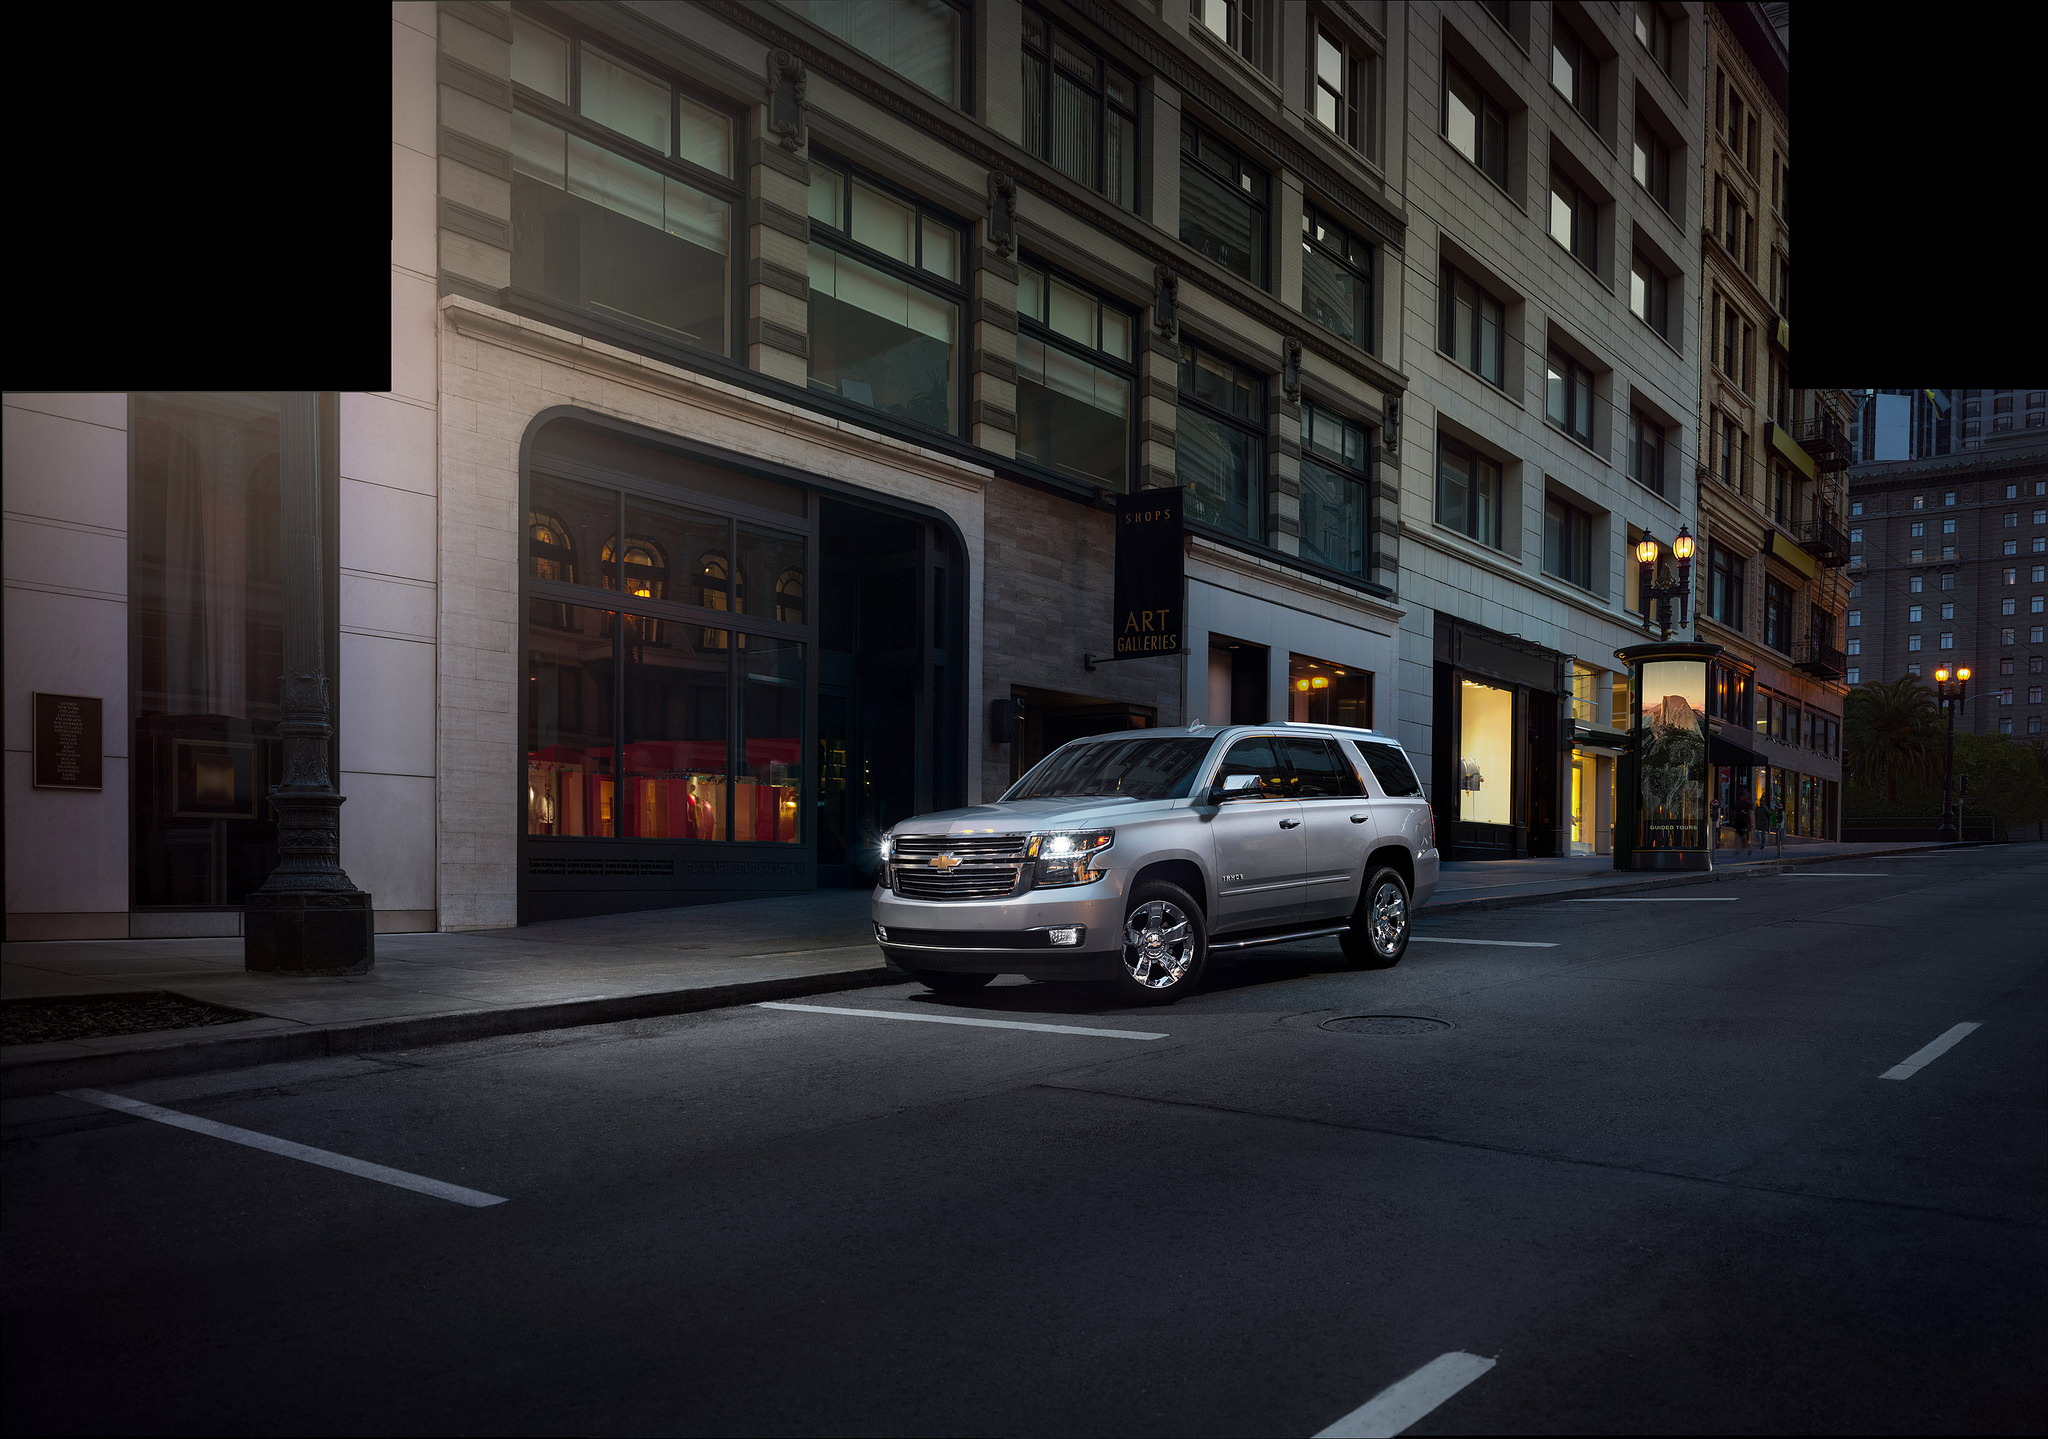 2020 Chevy Tahoe Gets Subtle Modifications - The News Wheel